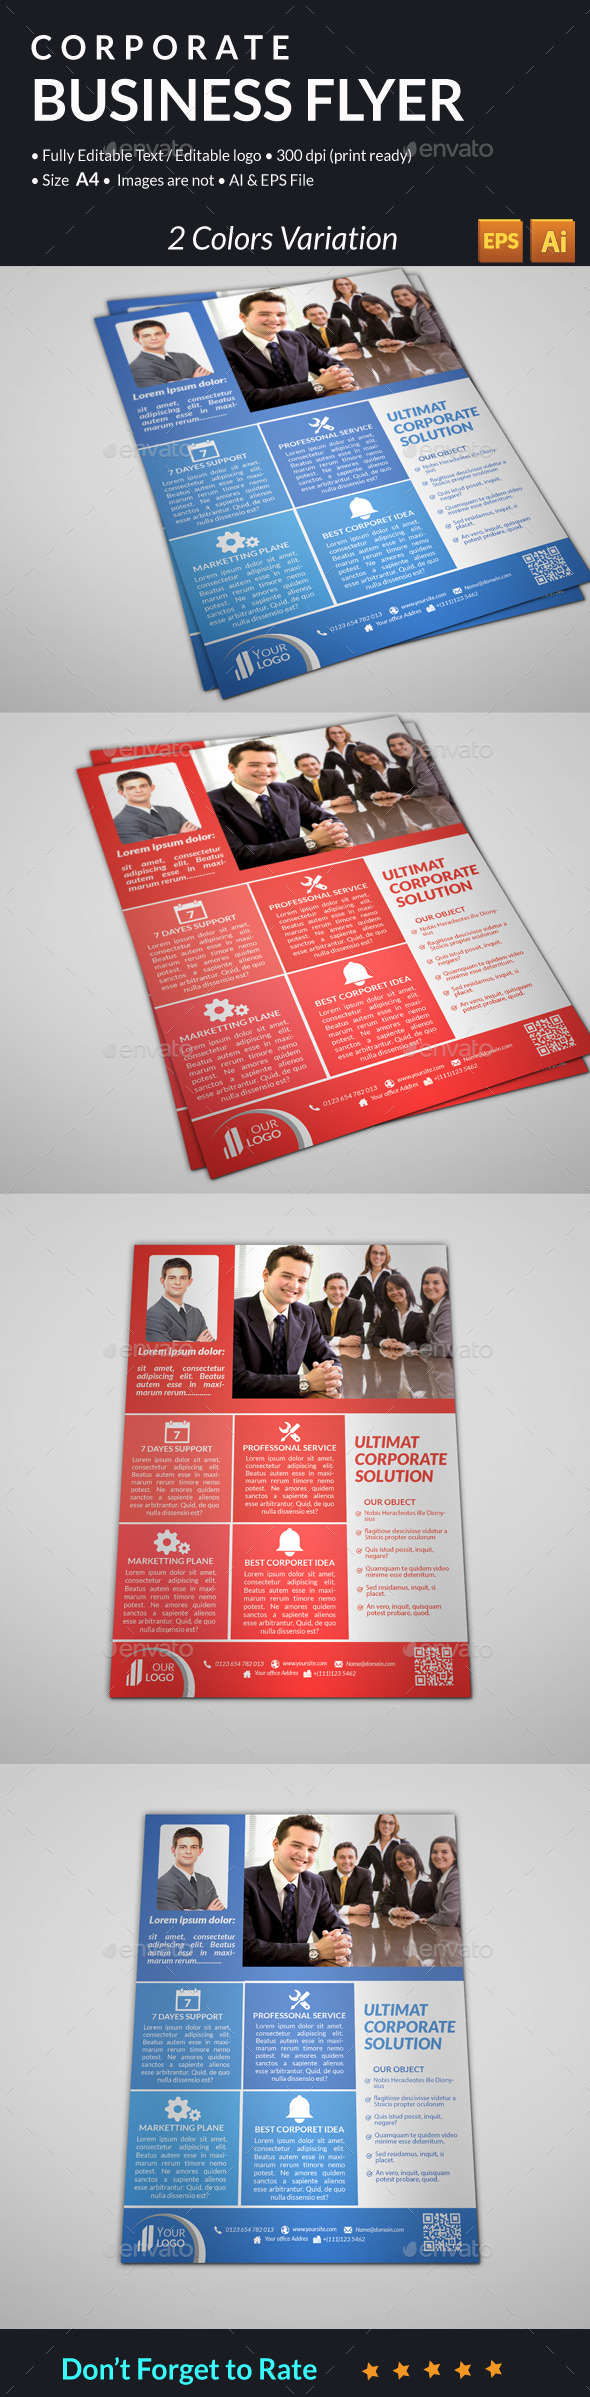 GraphicRiver Corporate Business Flyer 11253188